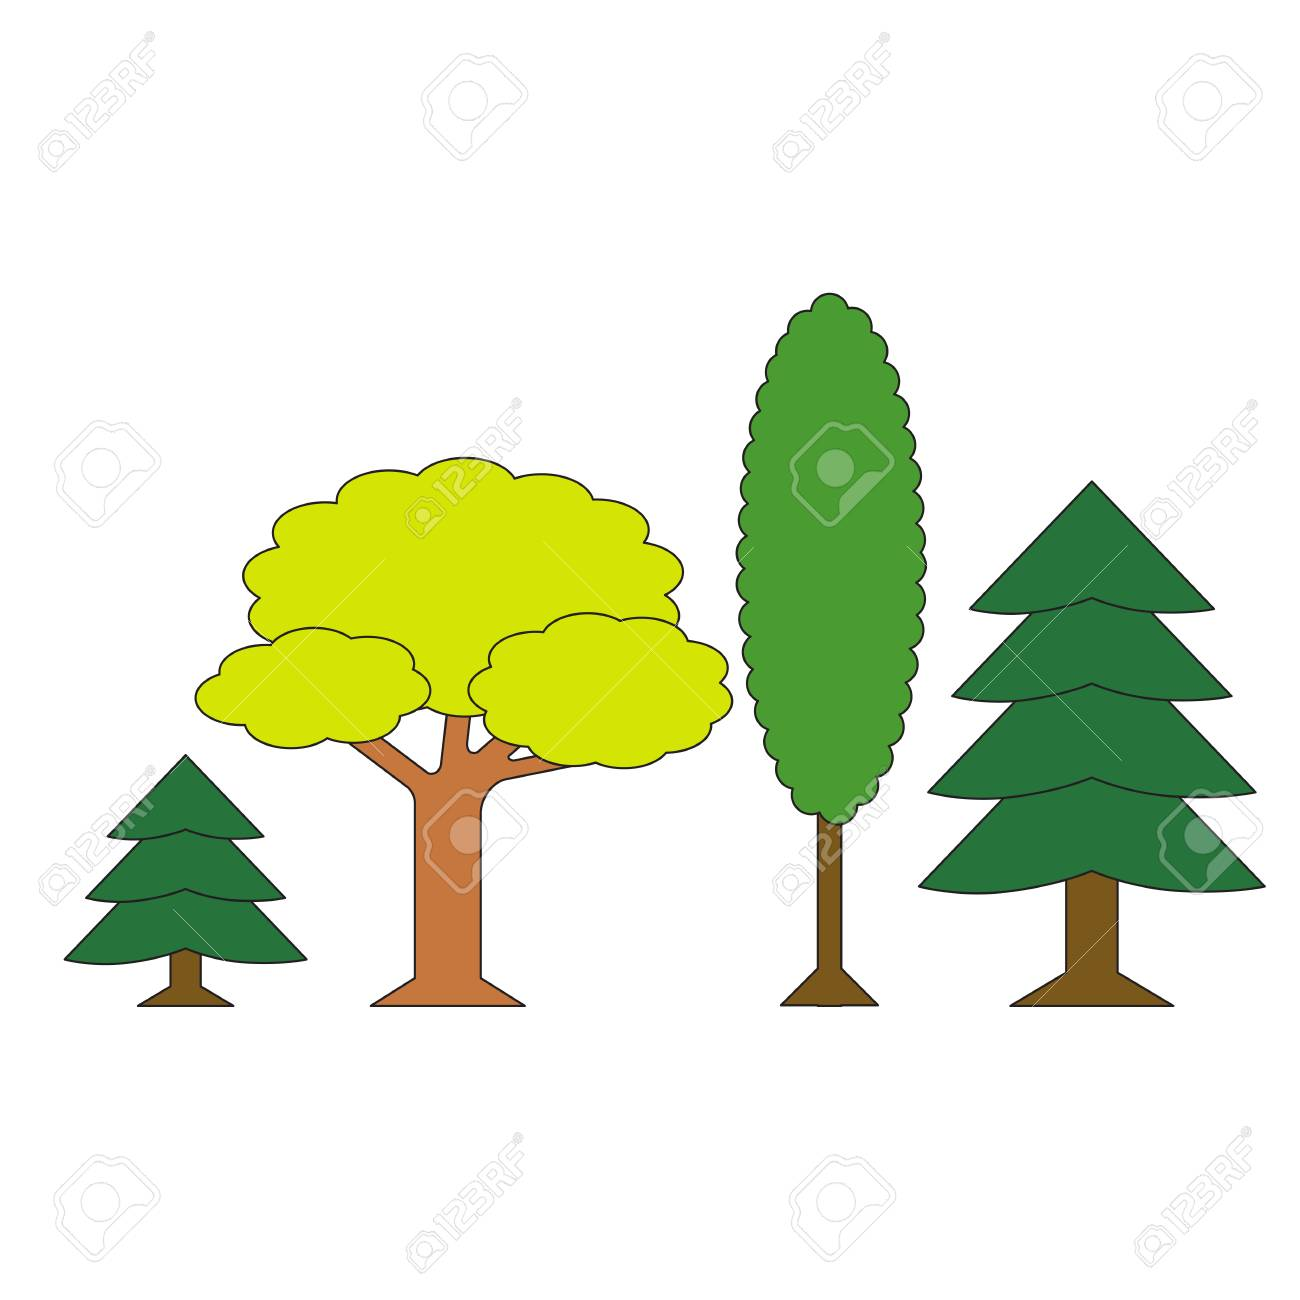 Different Forest Trees Cartoon Outlined Object With Black Stroke Royalty Free Cliparts Vectors And Stock Illustration Image 73790085 Animal cartoon in jungle with blank sign. different forest trees cartoon outlined object with black stroke